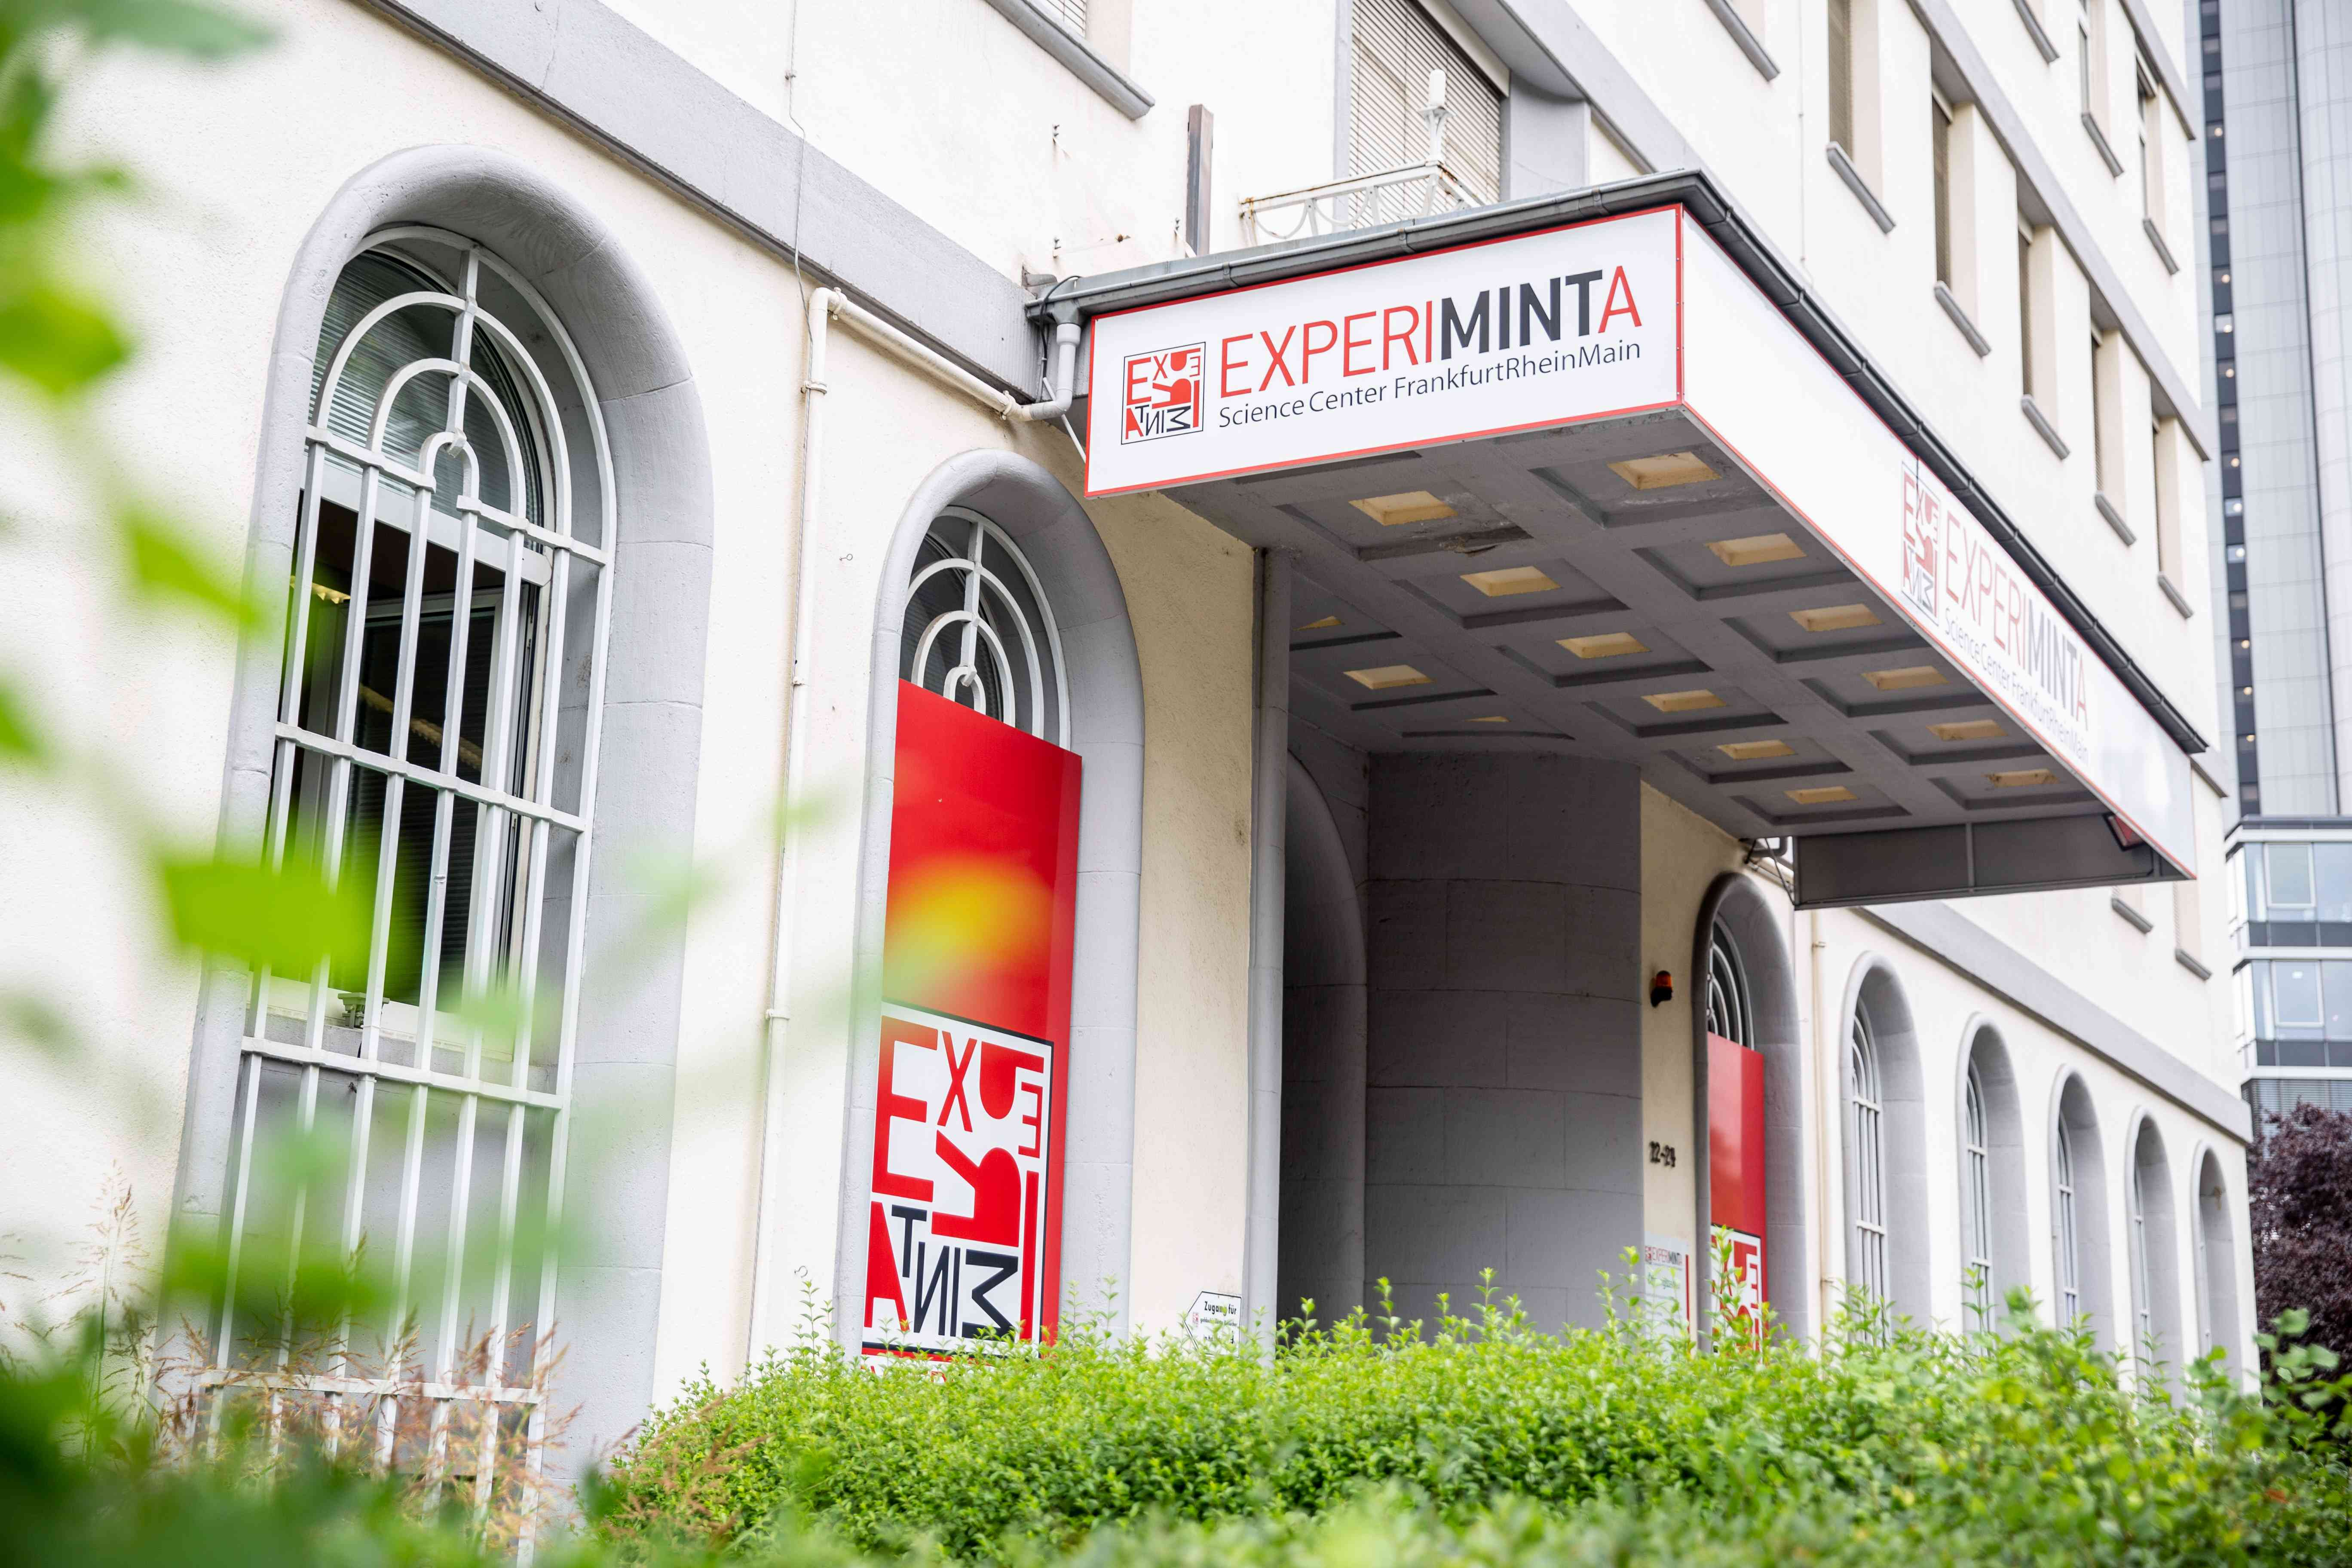 Entrance to the Experiminta Museum